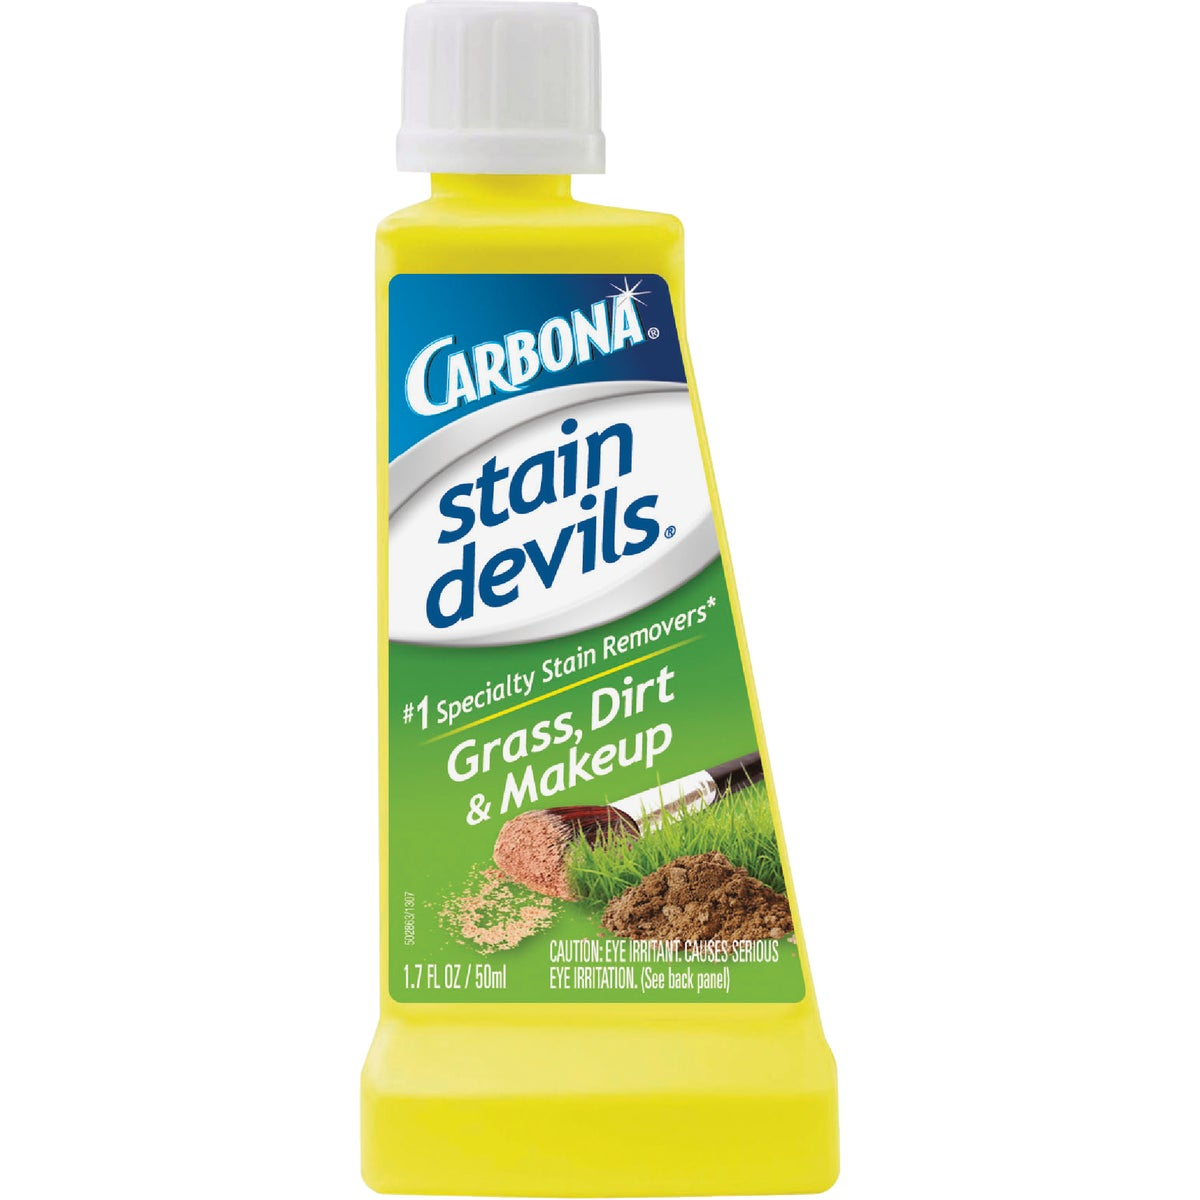 Carbona Stain Devils Formula 6 Stain Remover, 409/24